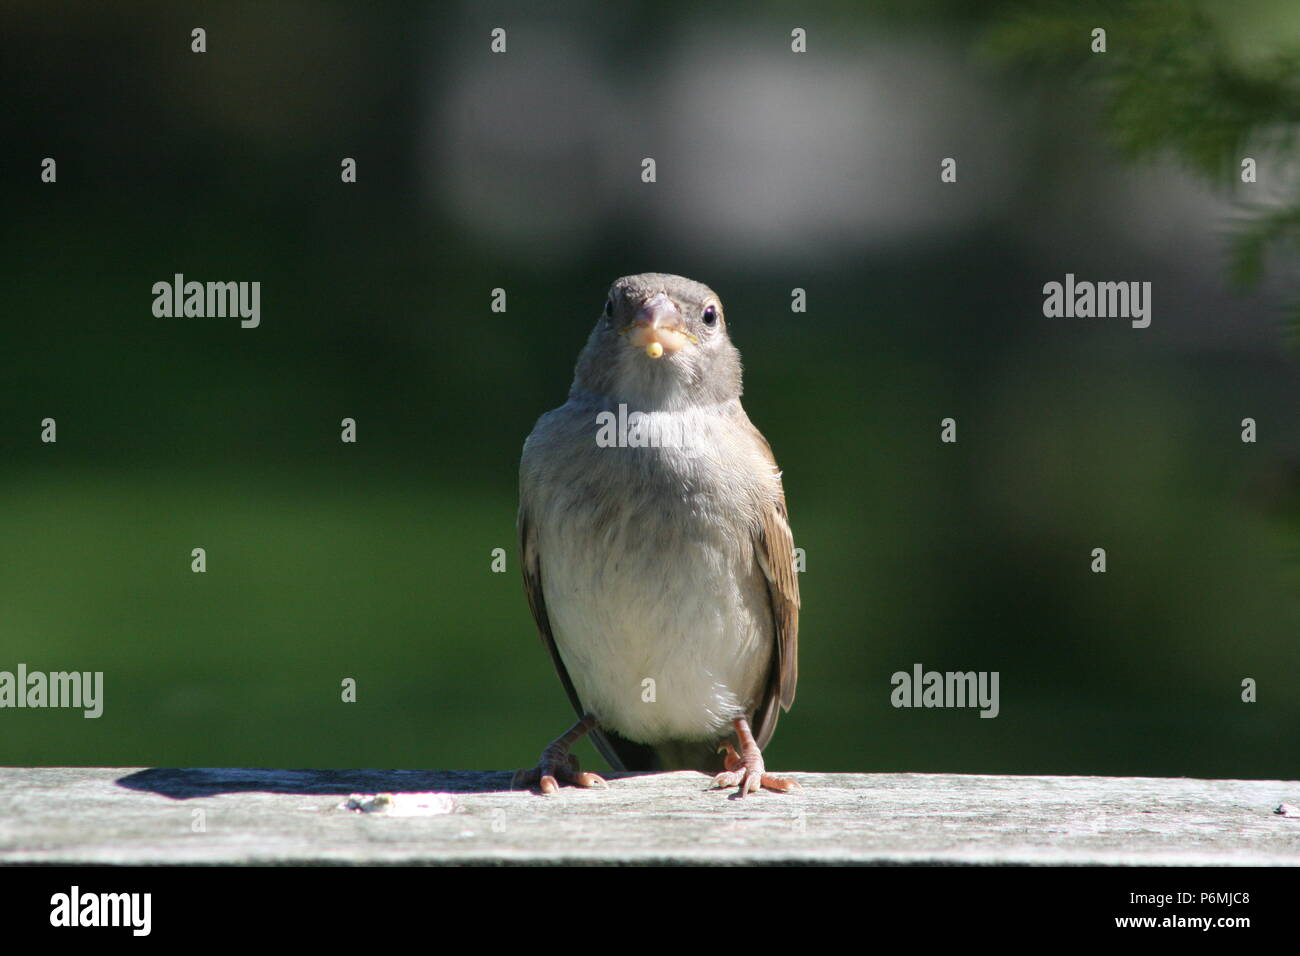 Passer domesticus (House Sparrow) Stock Photo